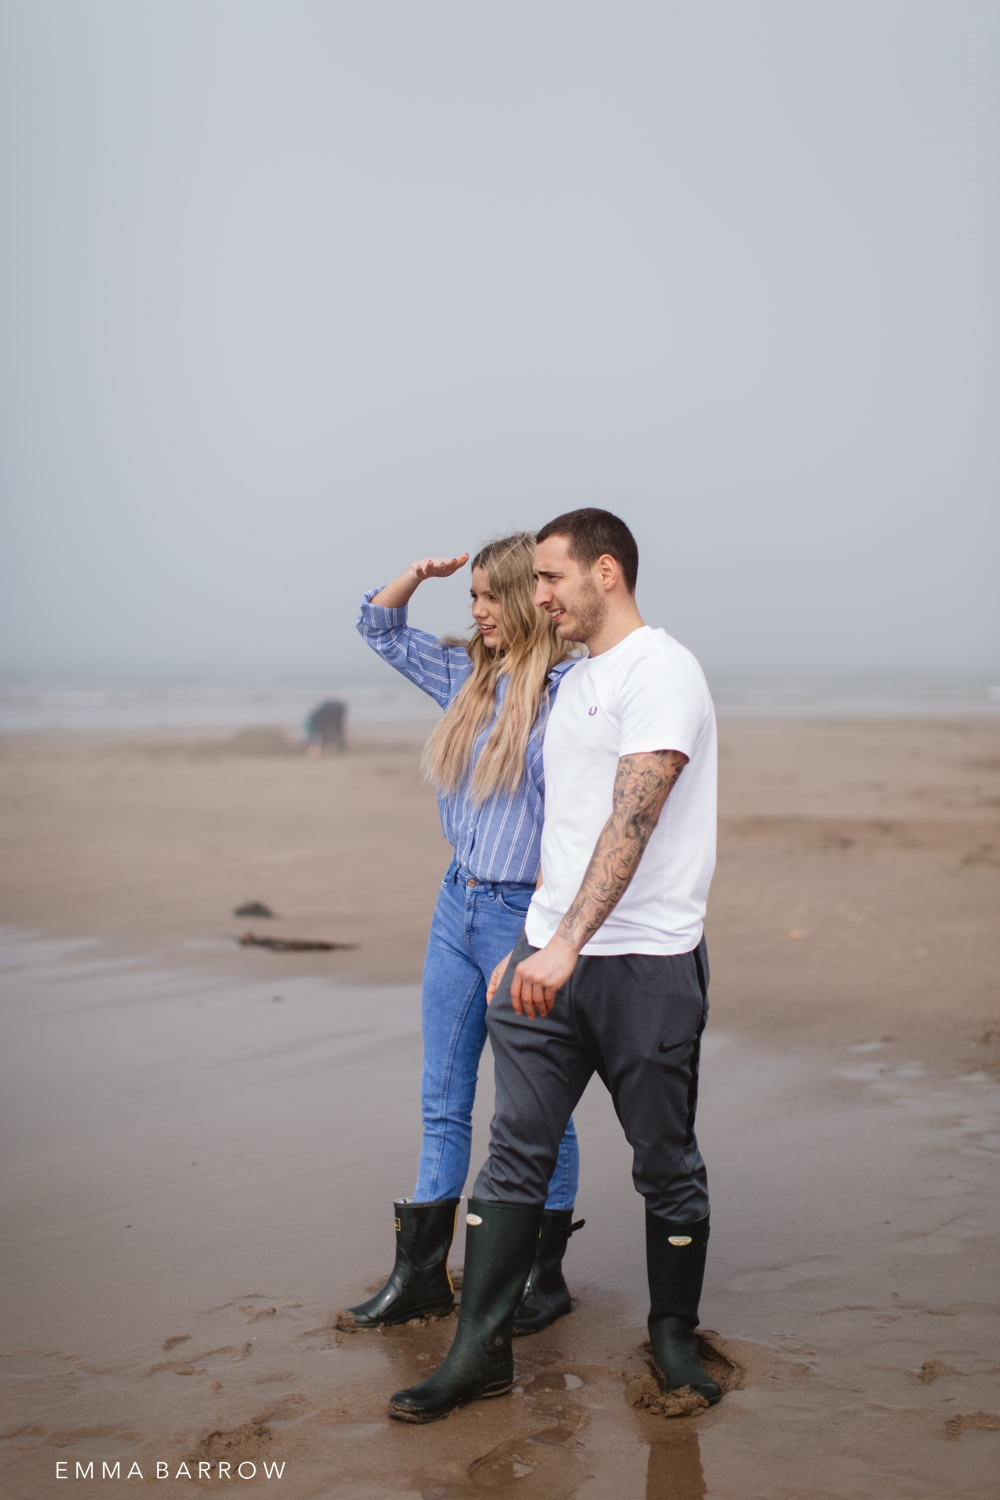 emmabarrow_hannahmattPreWed-53.jpg